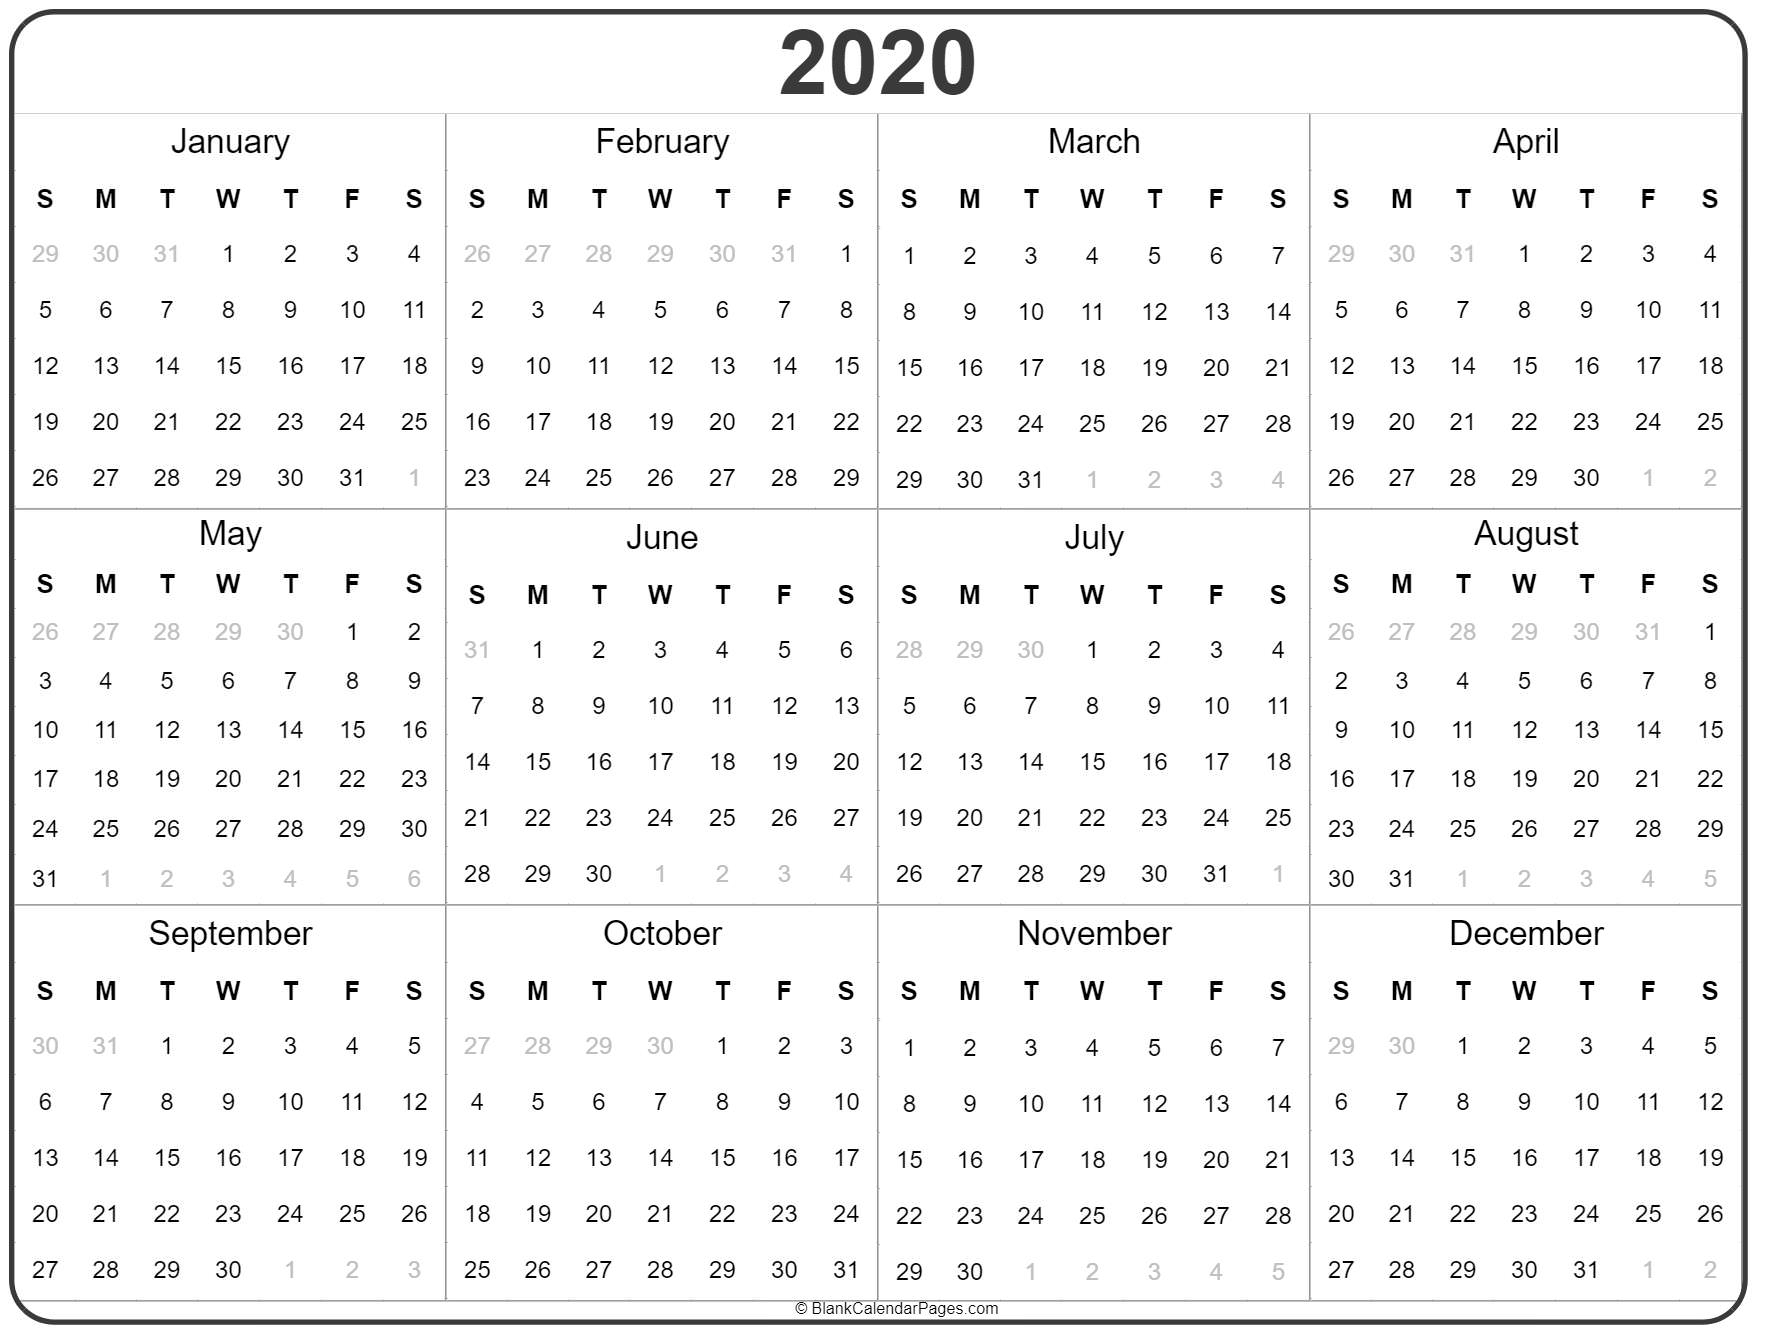 Printable 2020 Year Calendar  Yatay.horizonconsulting.co with regard to 2020 Blank Calendar Pages